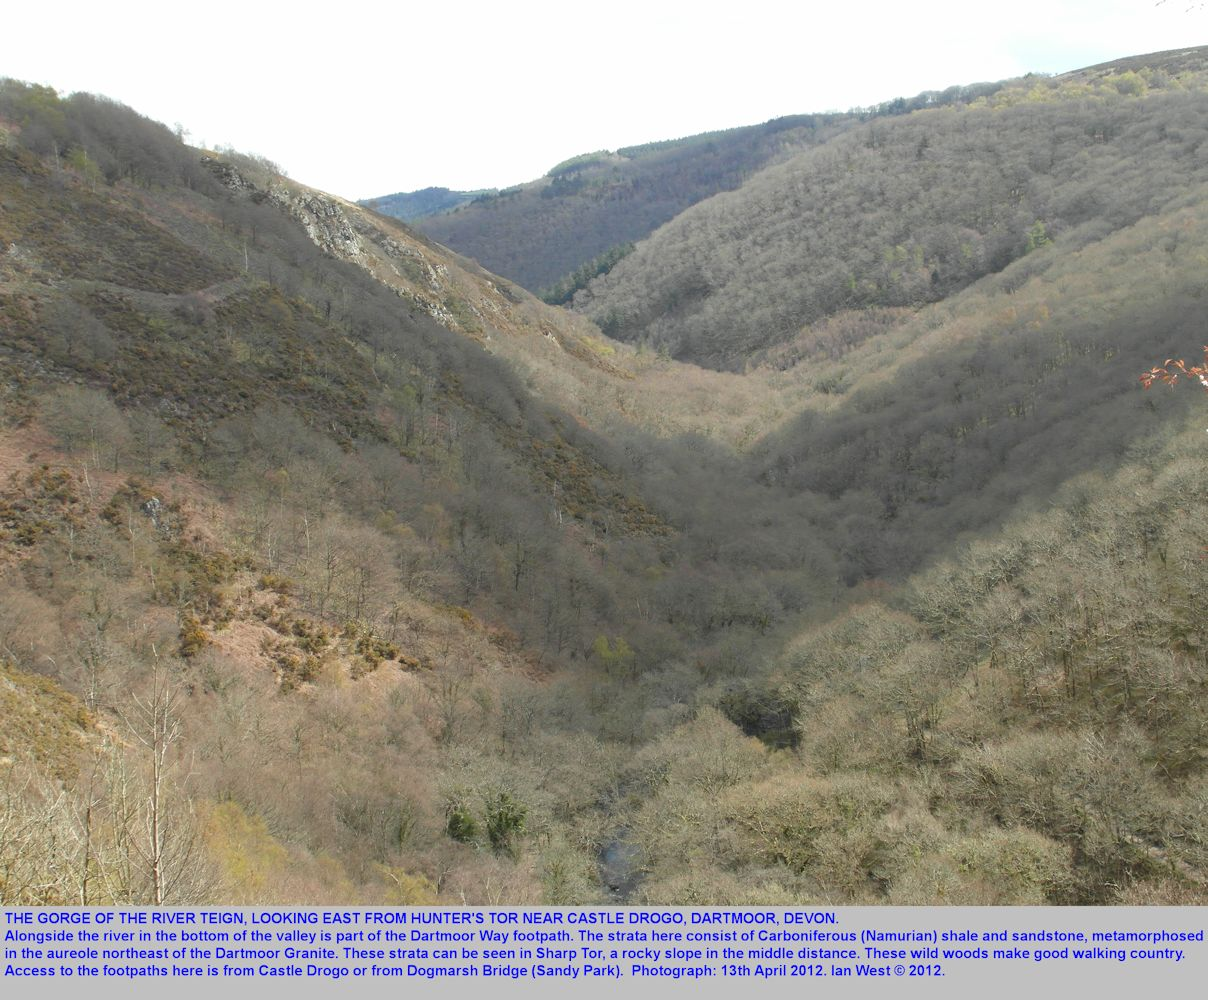 The Teign Valley gorge, looking eastward from Hunter's Tor near Castle Drogo, Dartmoor, Devon, 13th April 2012